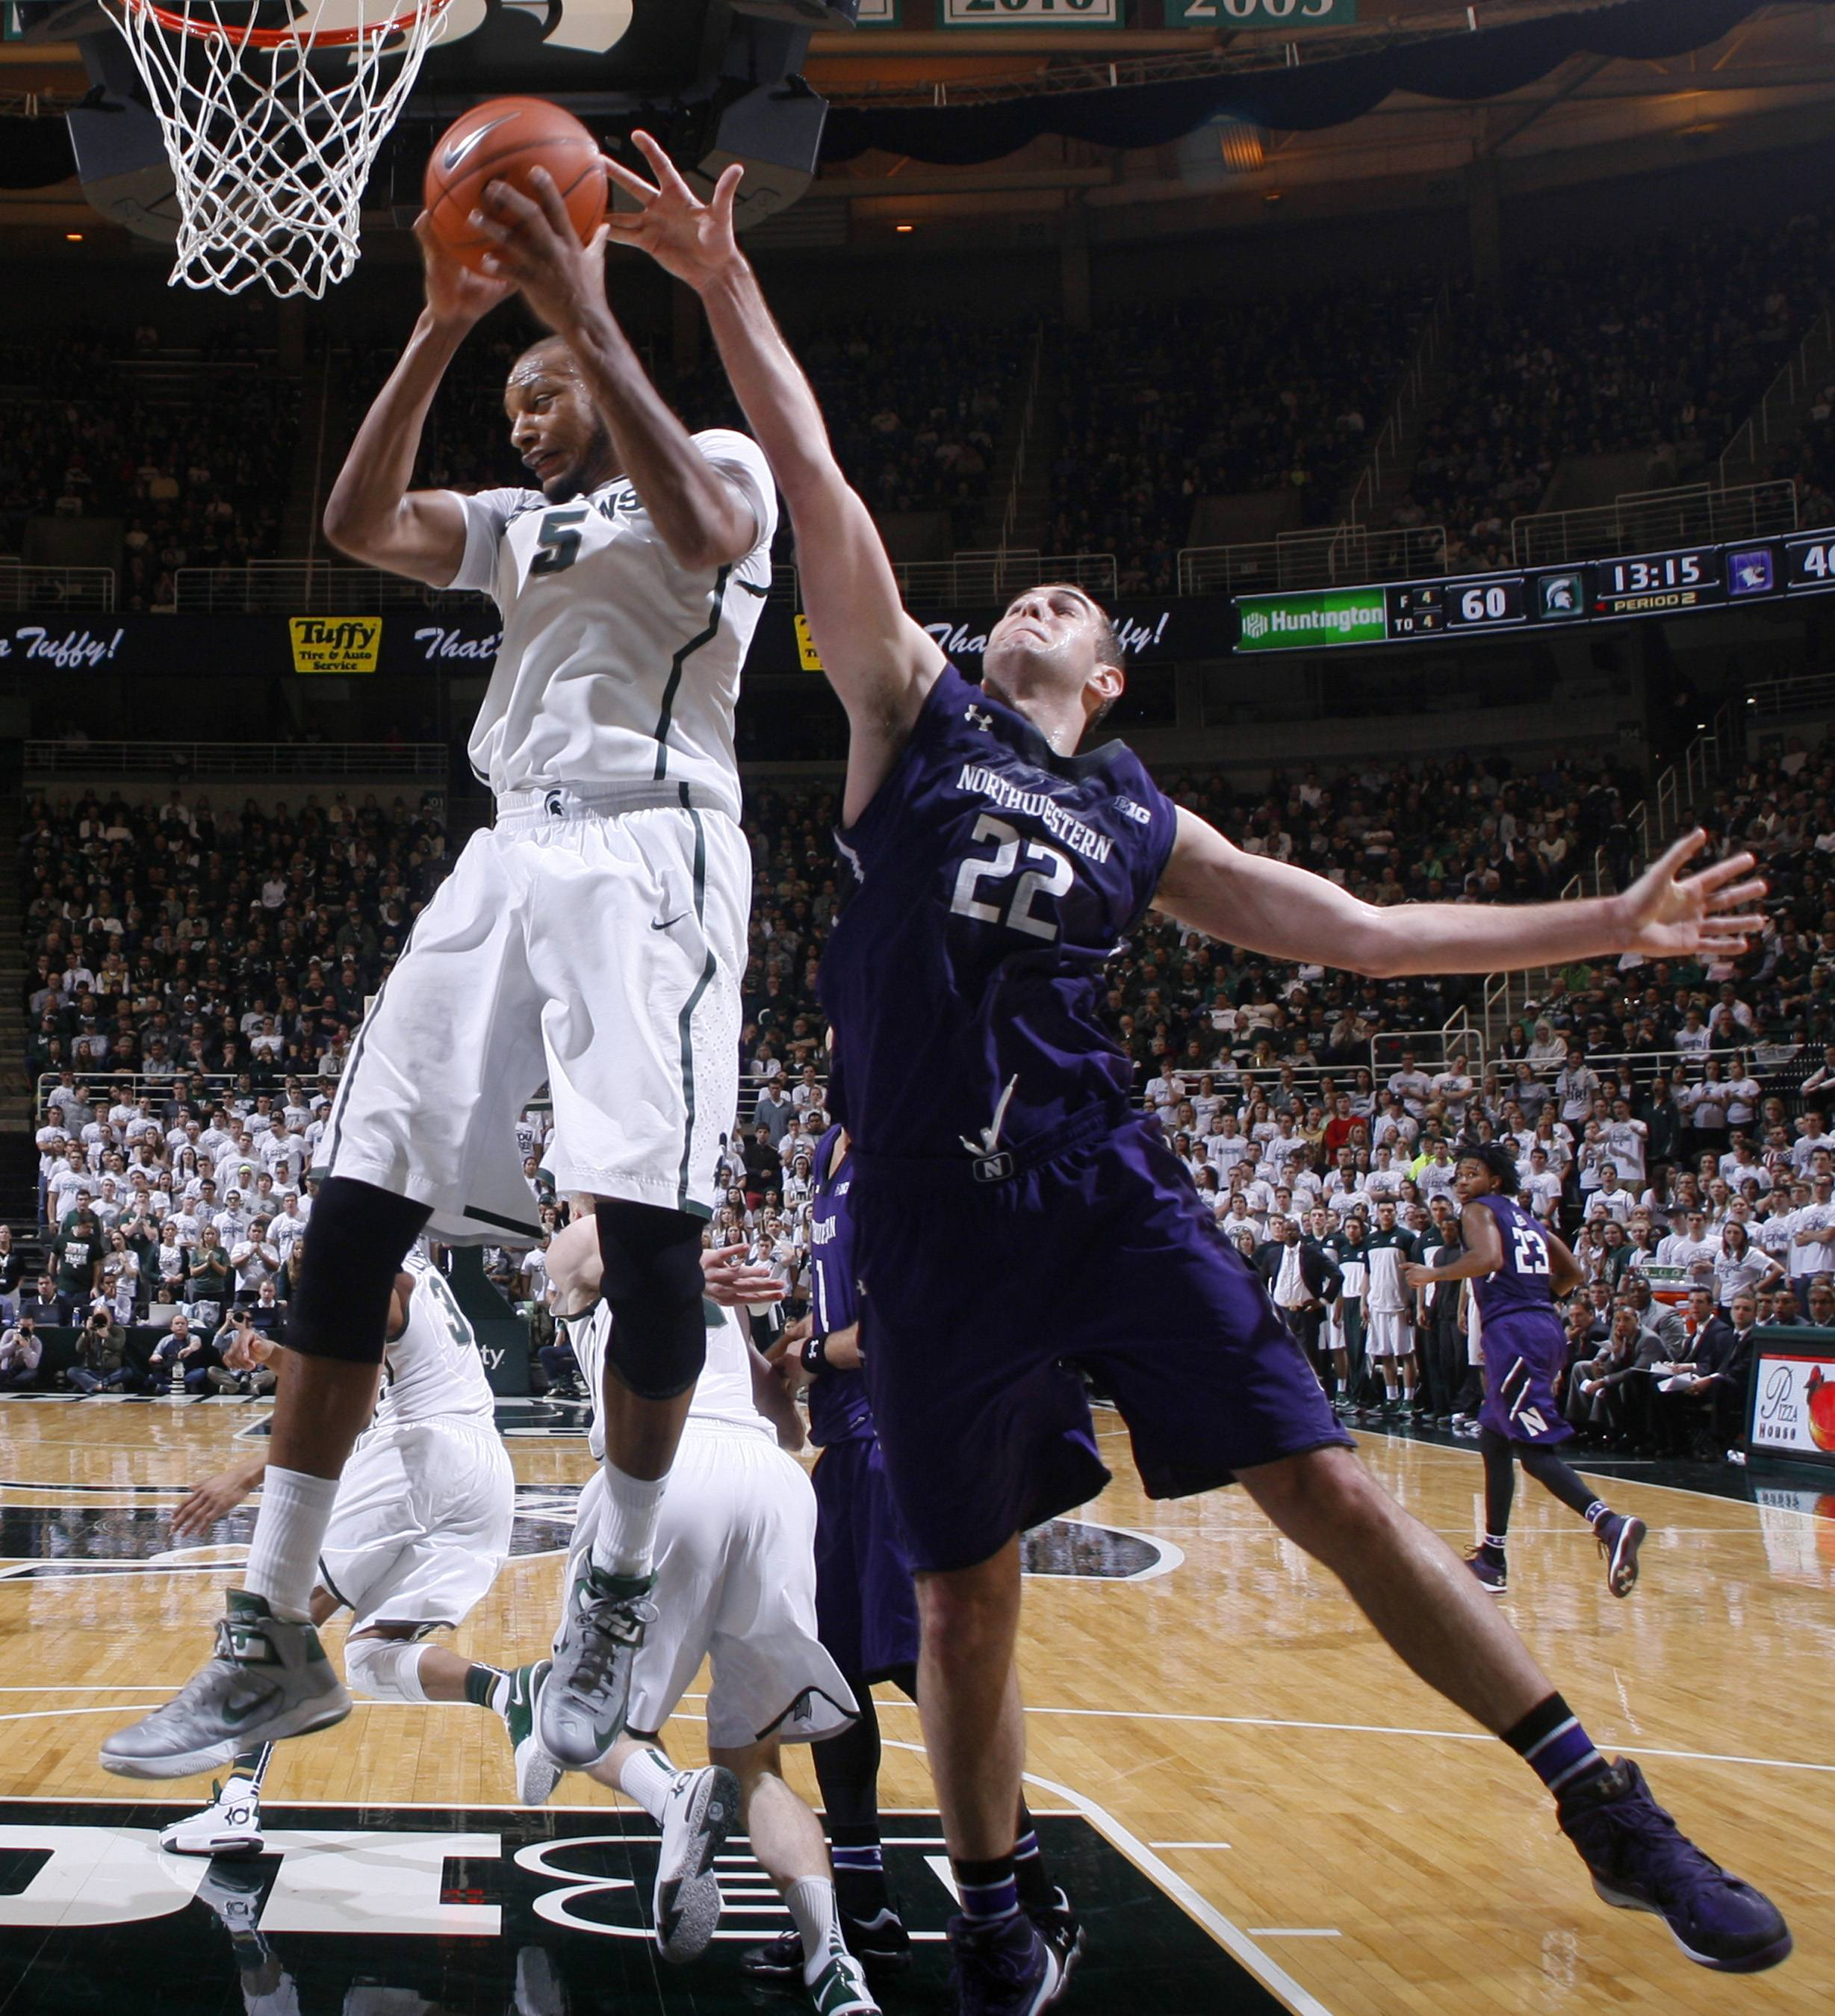 Michigan State's Adreian Payne (5) pulls down a rebound against Northwestern's Alex Olah (22) during the second half of an NCAA college basketball game, Thursday, Feb. 13, 2014, in East Lansing, Mich. Payne led Michigan State with 20 points and 14 rebounds in an 85-70 win.